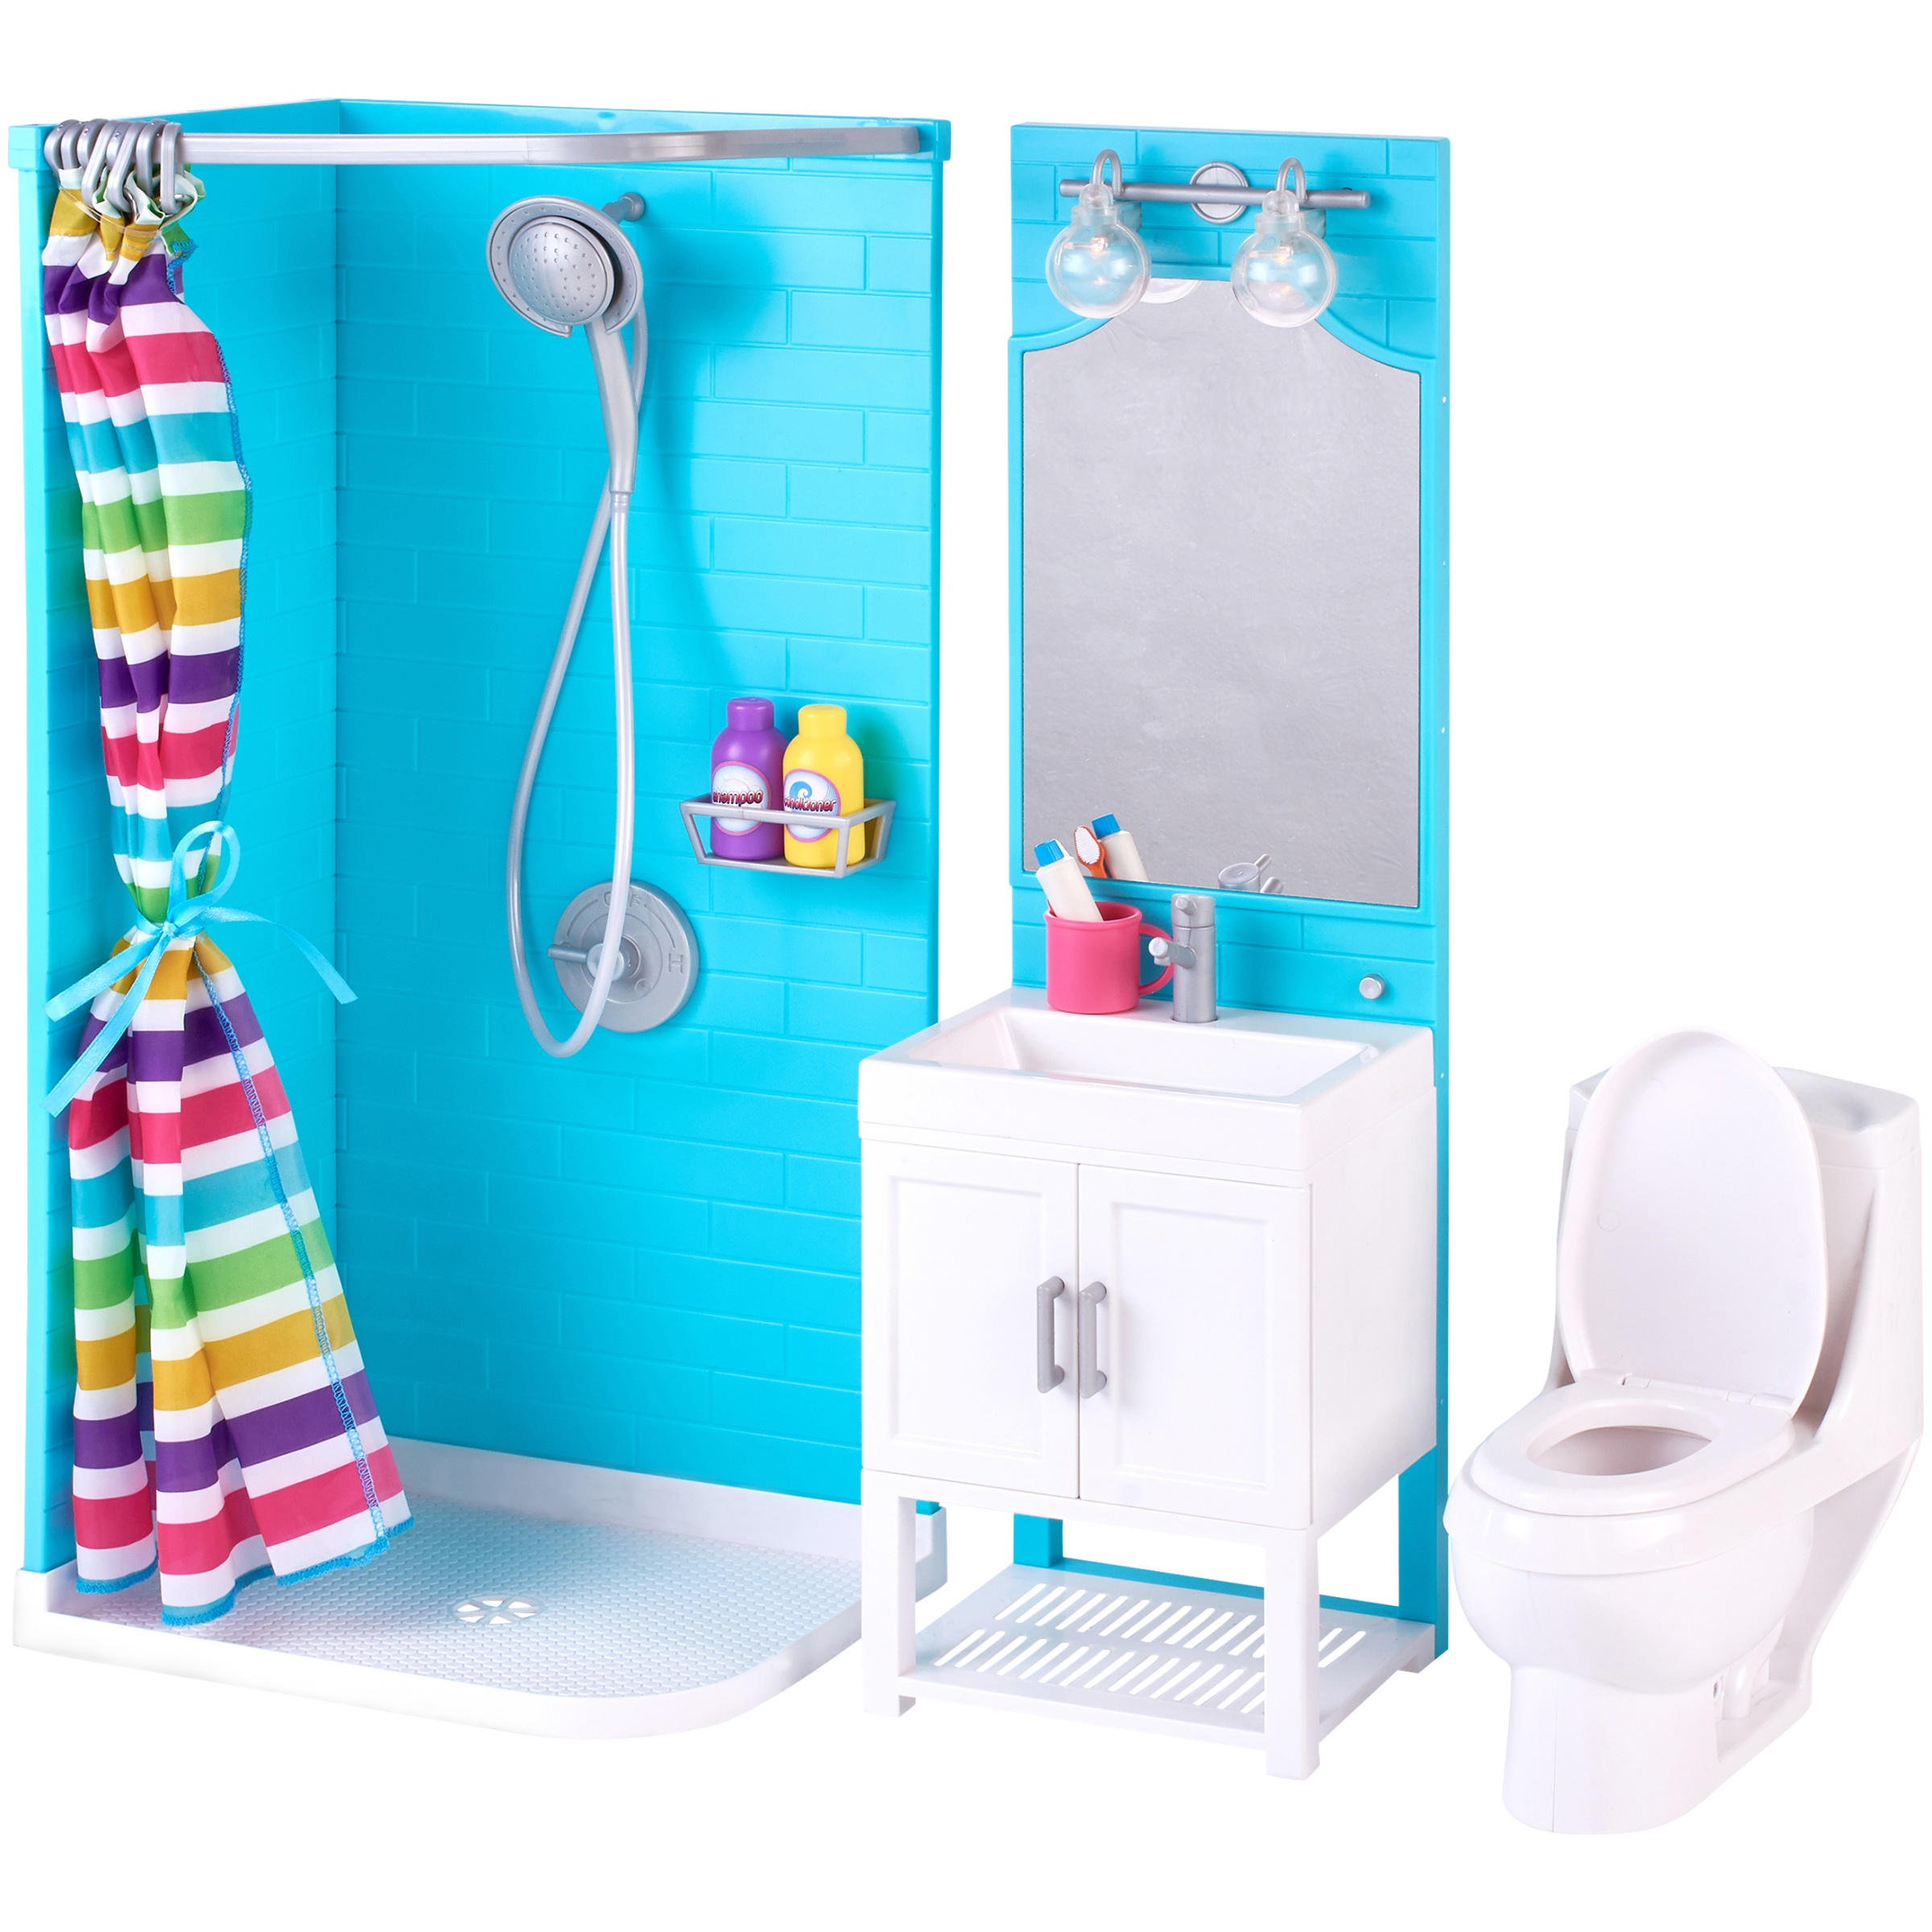 My Life As 17 Piece Bathroom Play Set With Shower And Light Up Vanity